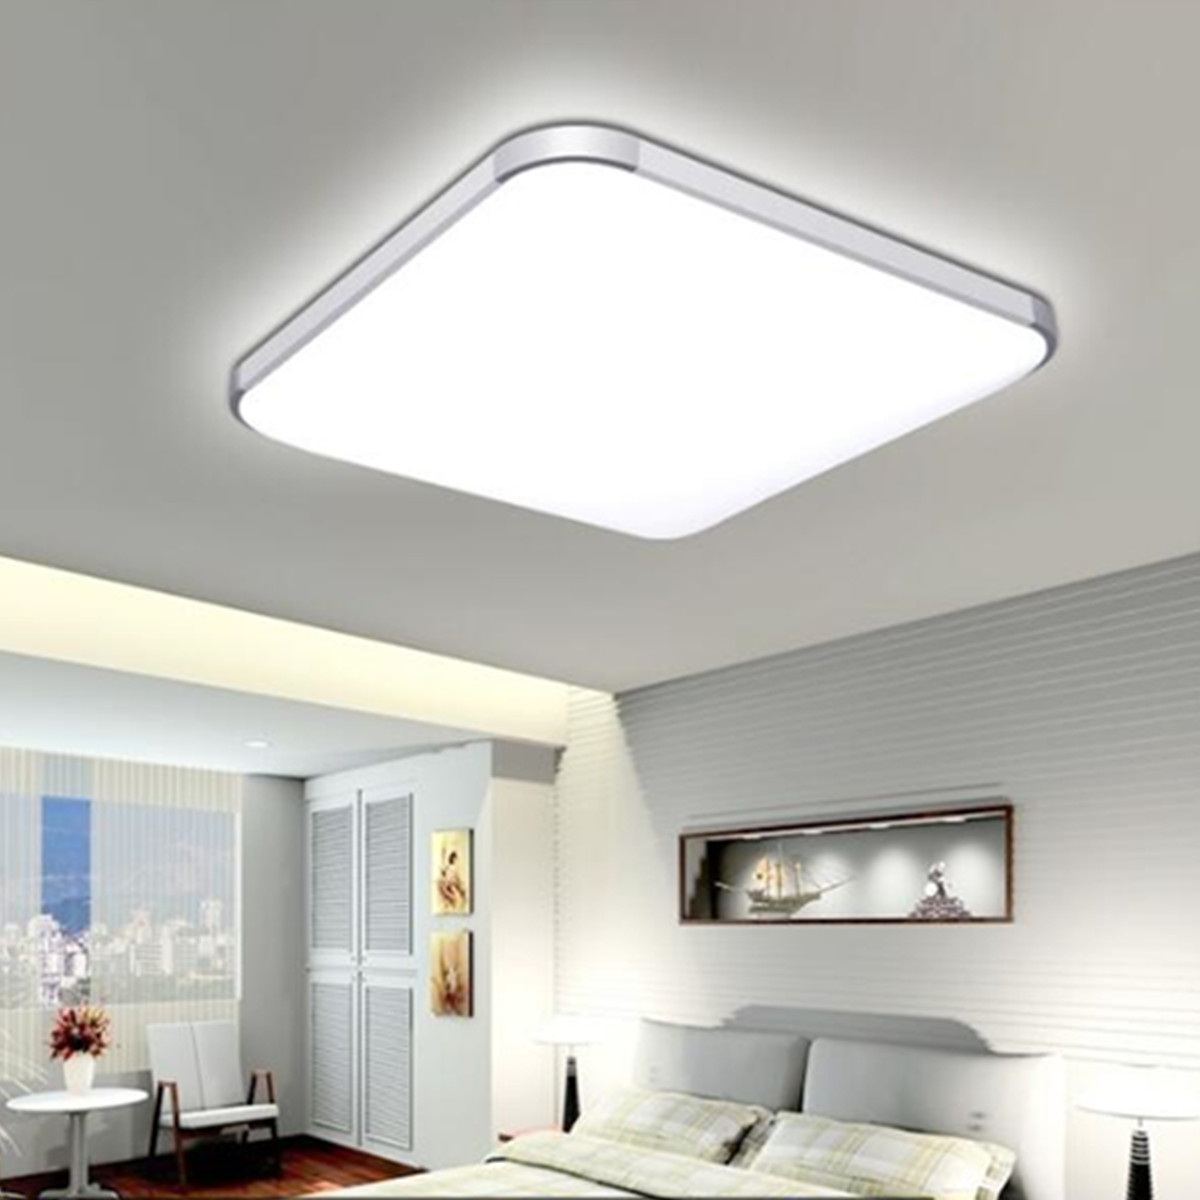 24W LED Modern Flush Mount Ceiling Light Bedroom Lamp Home Fixture With Remote